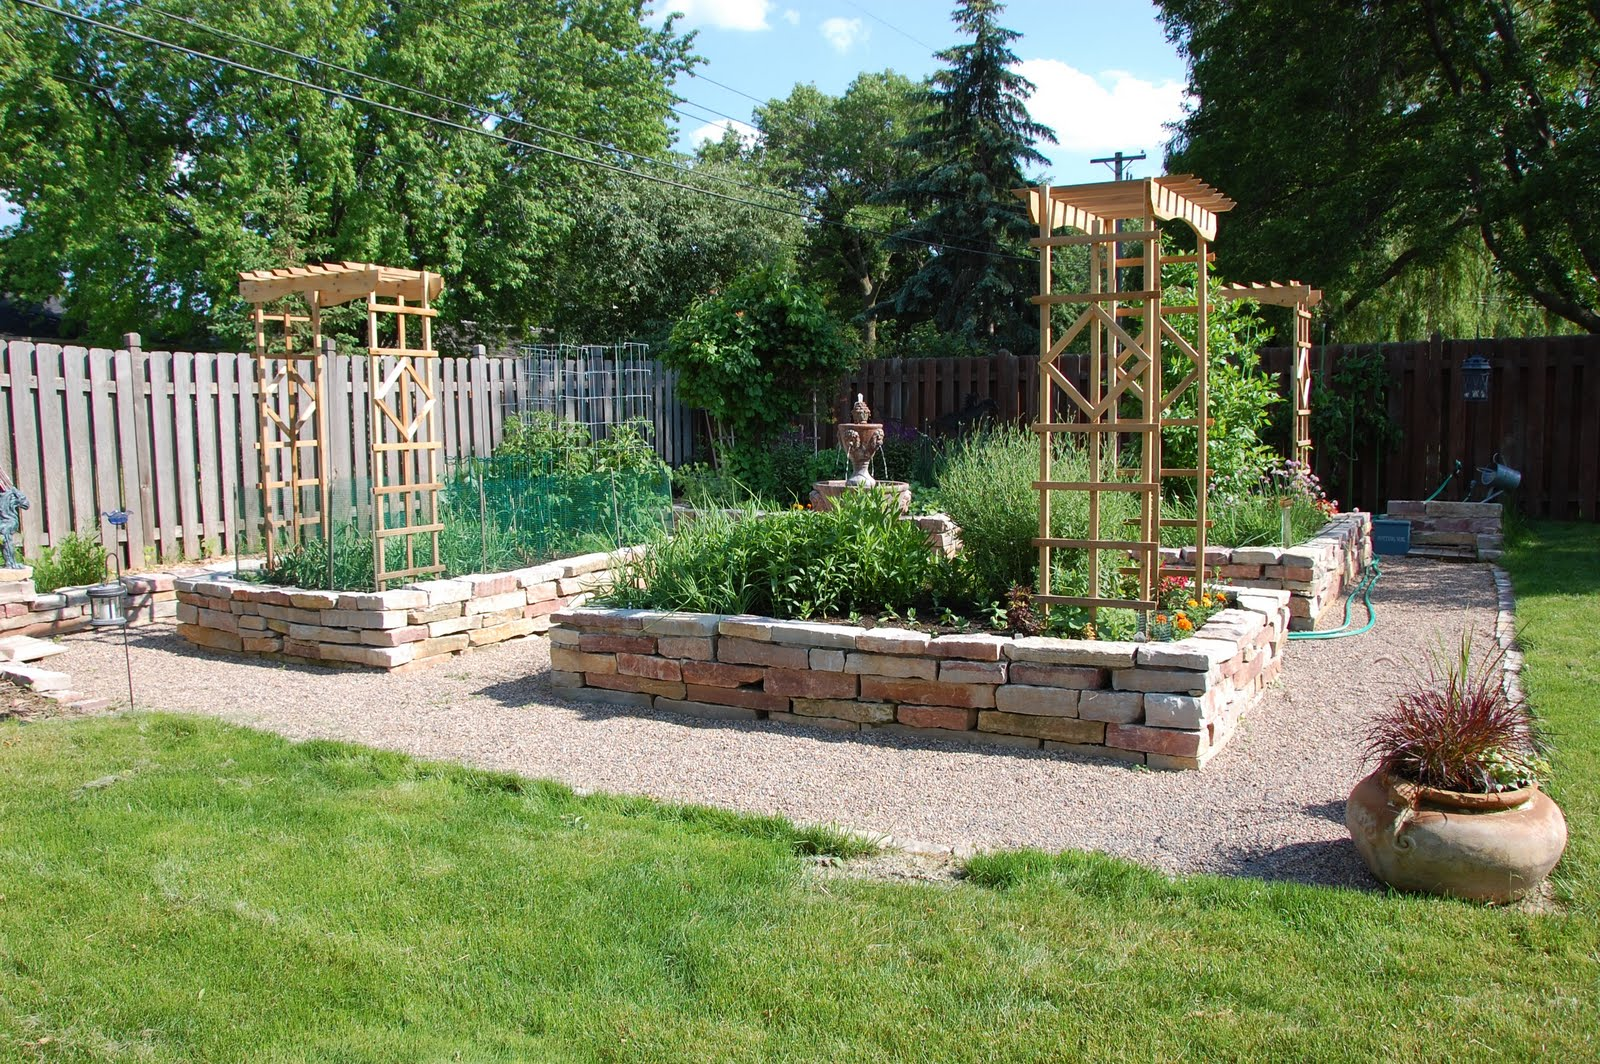 Vignette Design Bucket List 3 A Beautiful Raised Bed Vegetable Garden